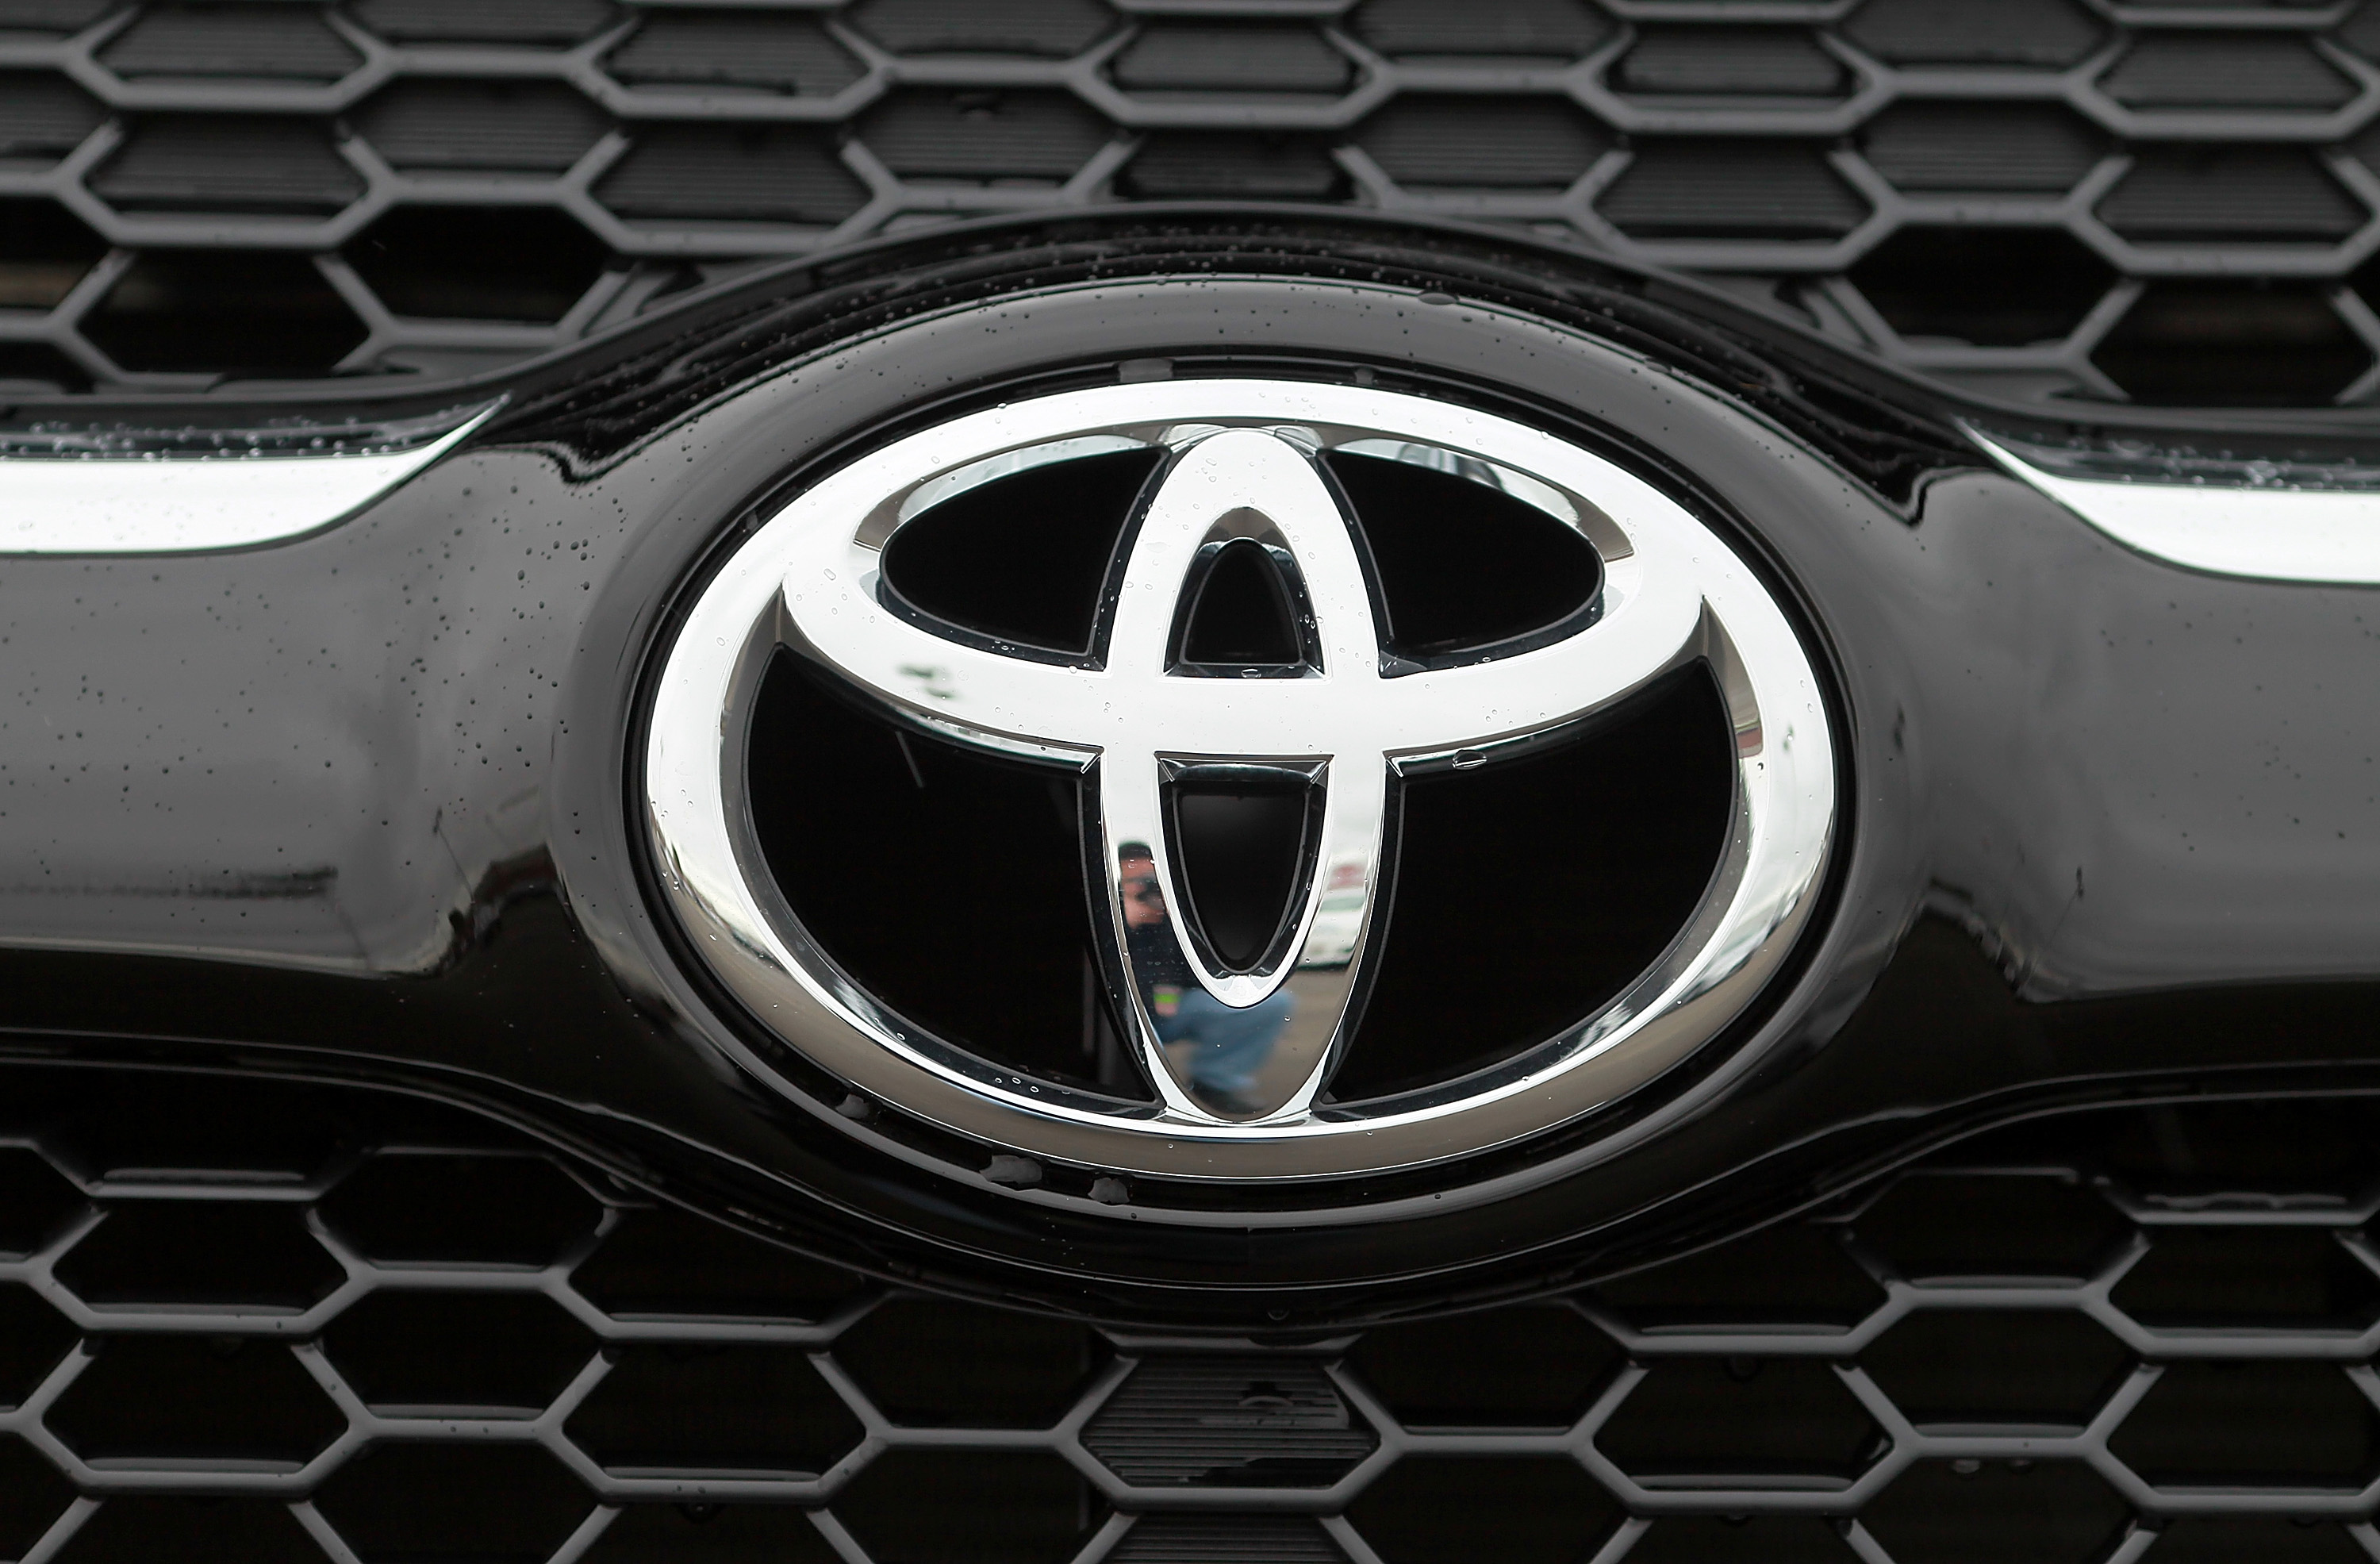 JTEHD20V556045482 besides Masterauto wordpress additionally Toyota Plant Locations further Toyota 12732700 together with Toyota Moving Kluger Production To Us In 2013. on toyota motor manufacturing north america